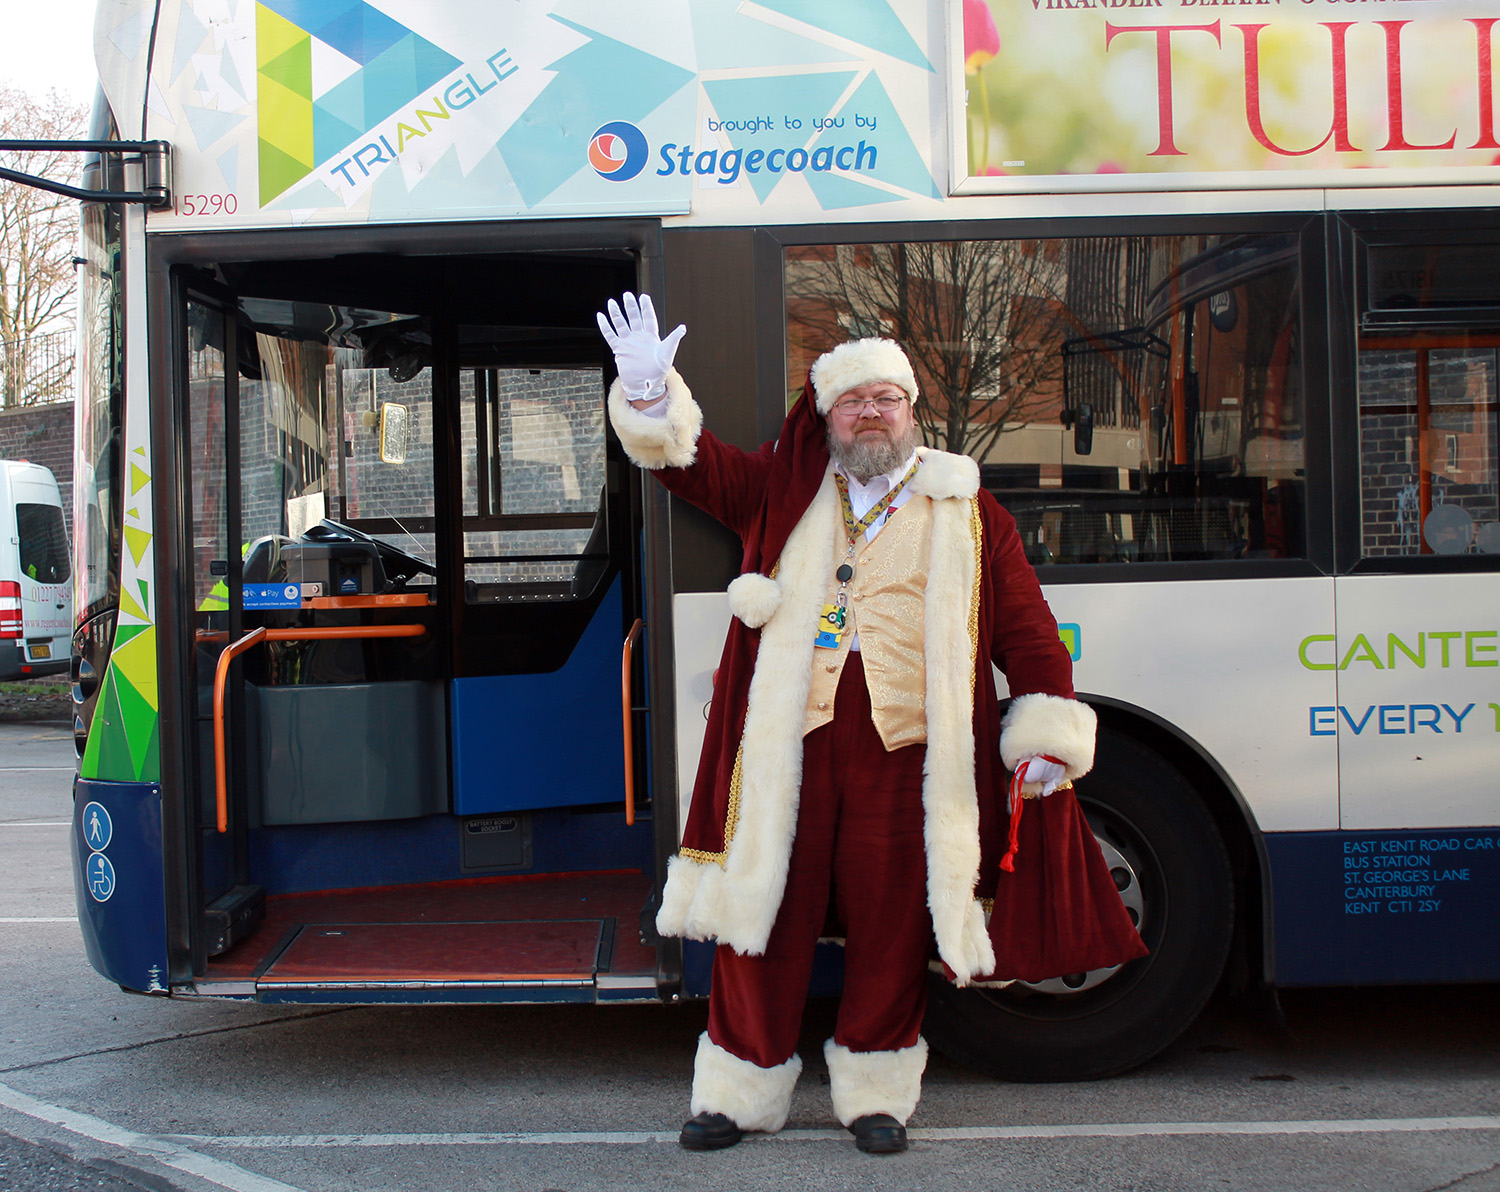 Santa Clowes is coming to town with Stagecoach and the Santa bus